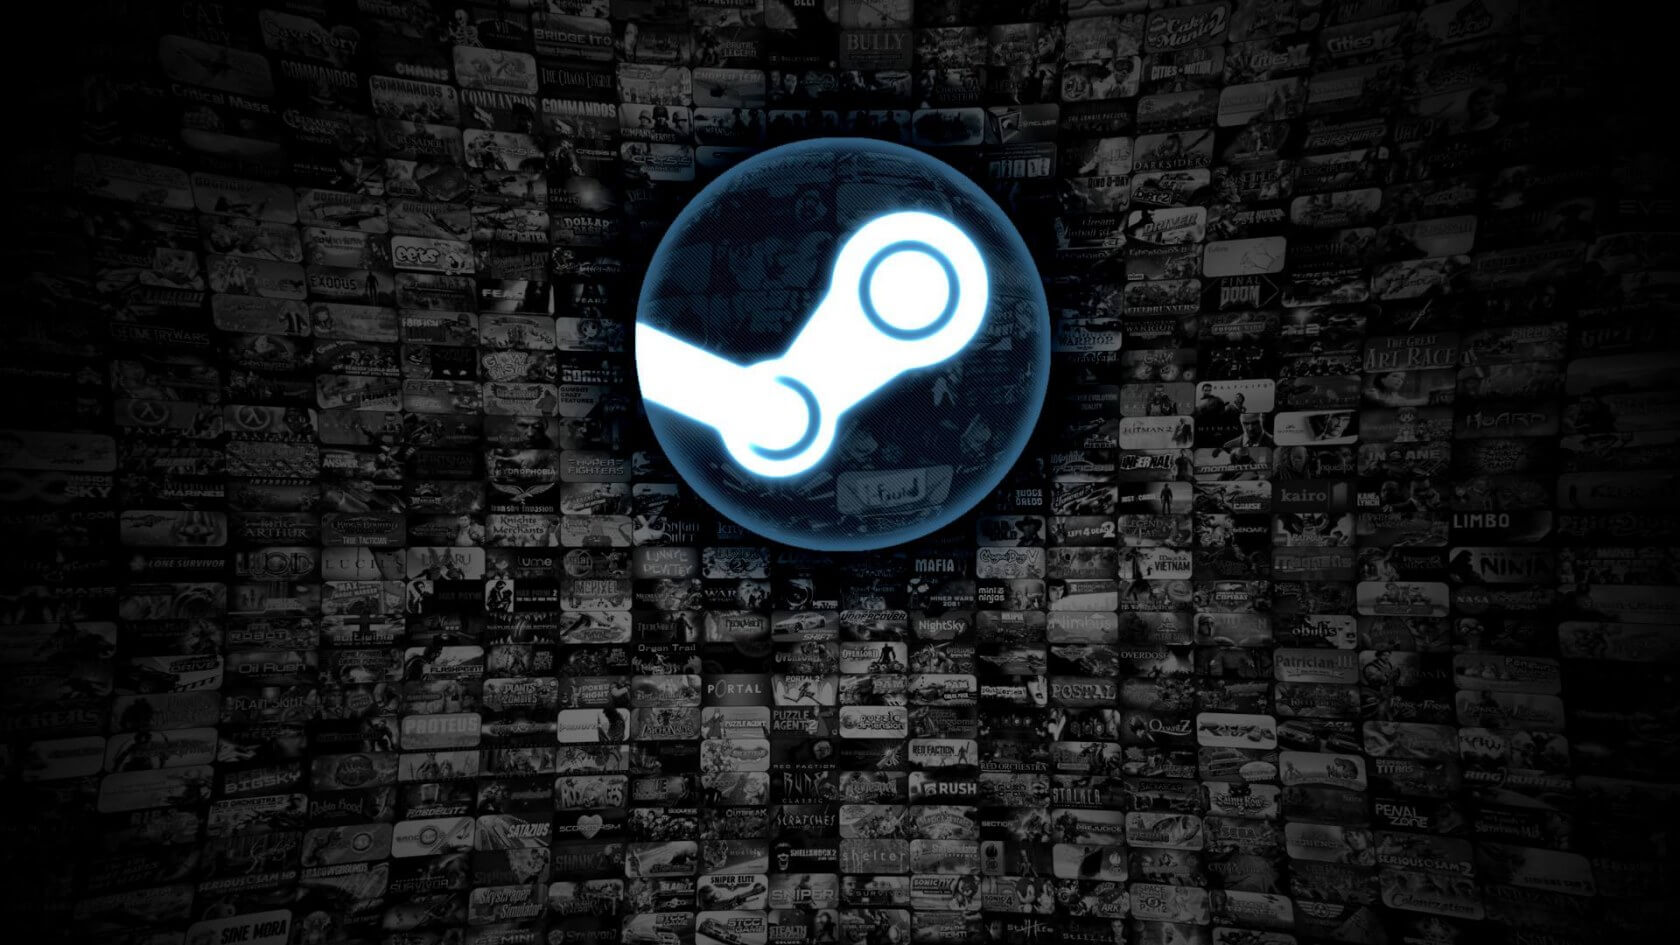 Steam Link Anywhere update allows you to stream games on any PC